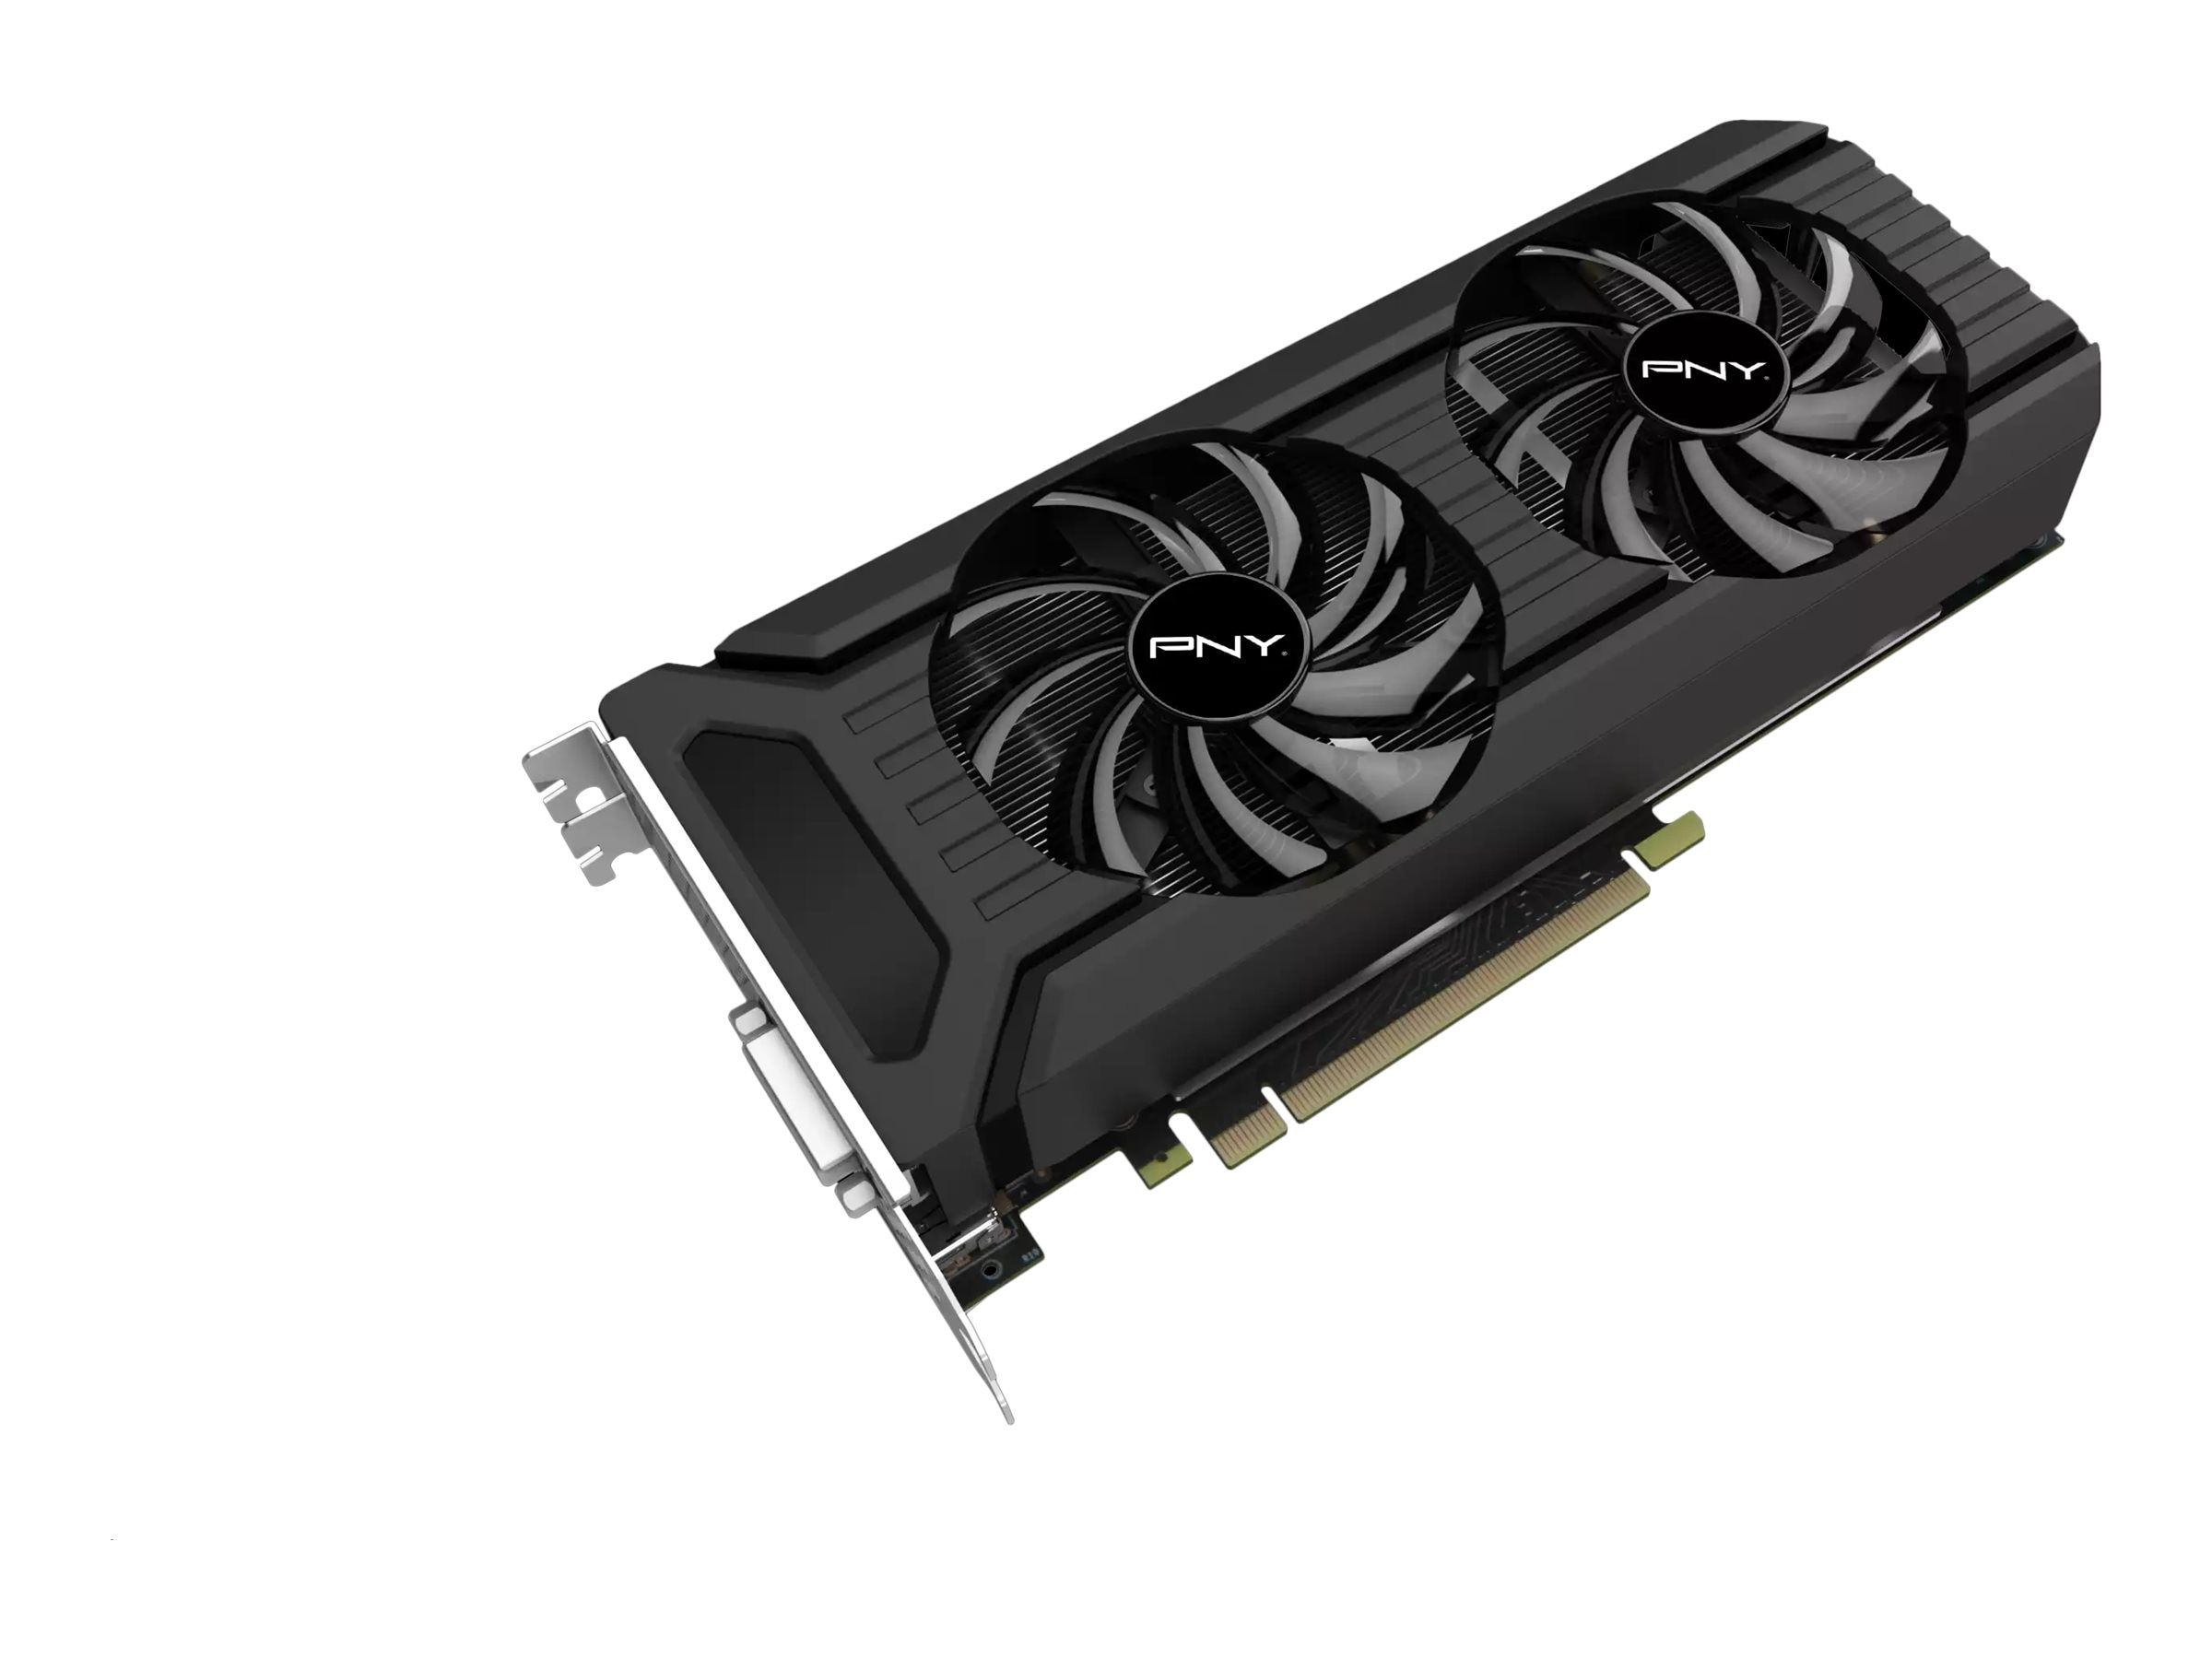 PNY GeForce GTX 1060 PCIe Graphics Card, 3GB GDDR5